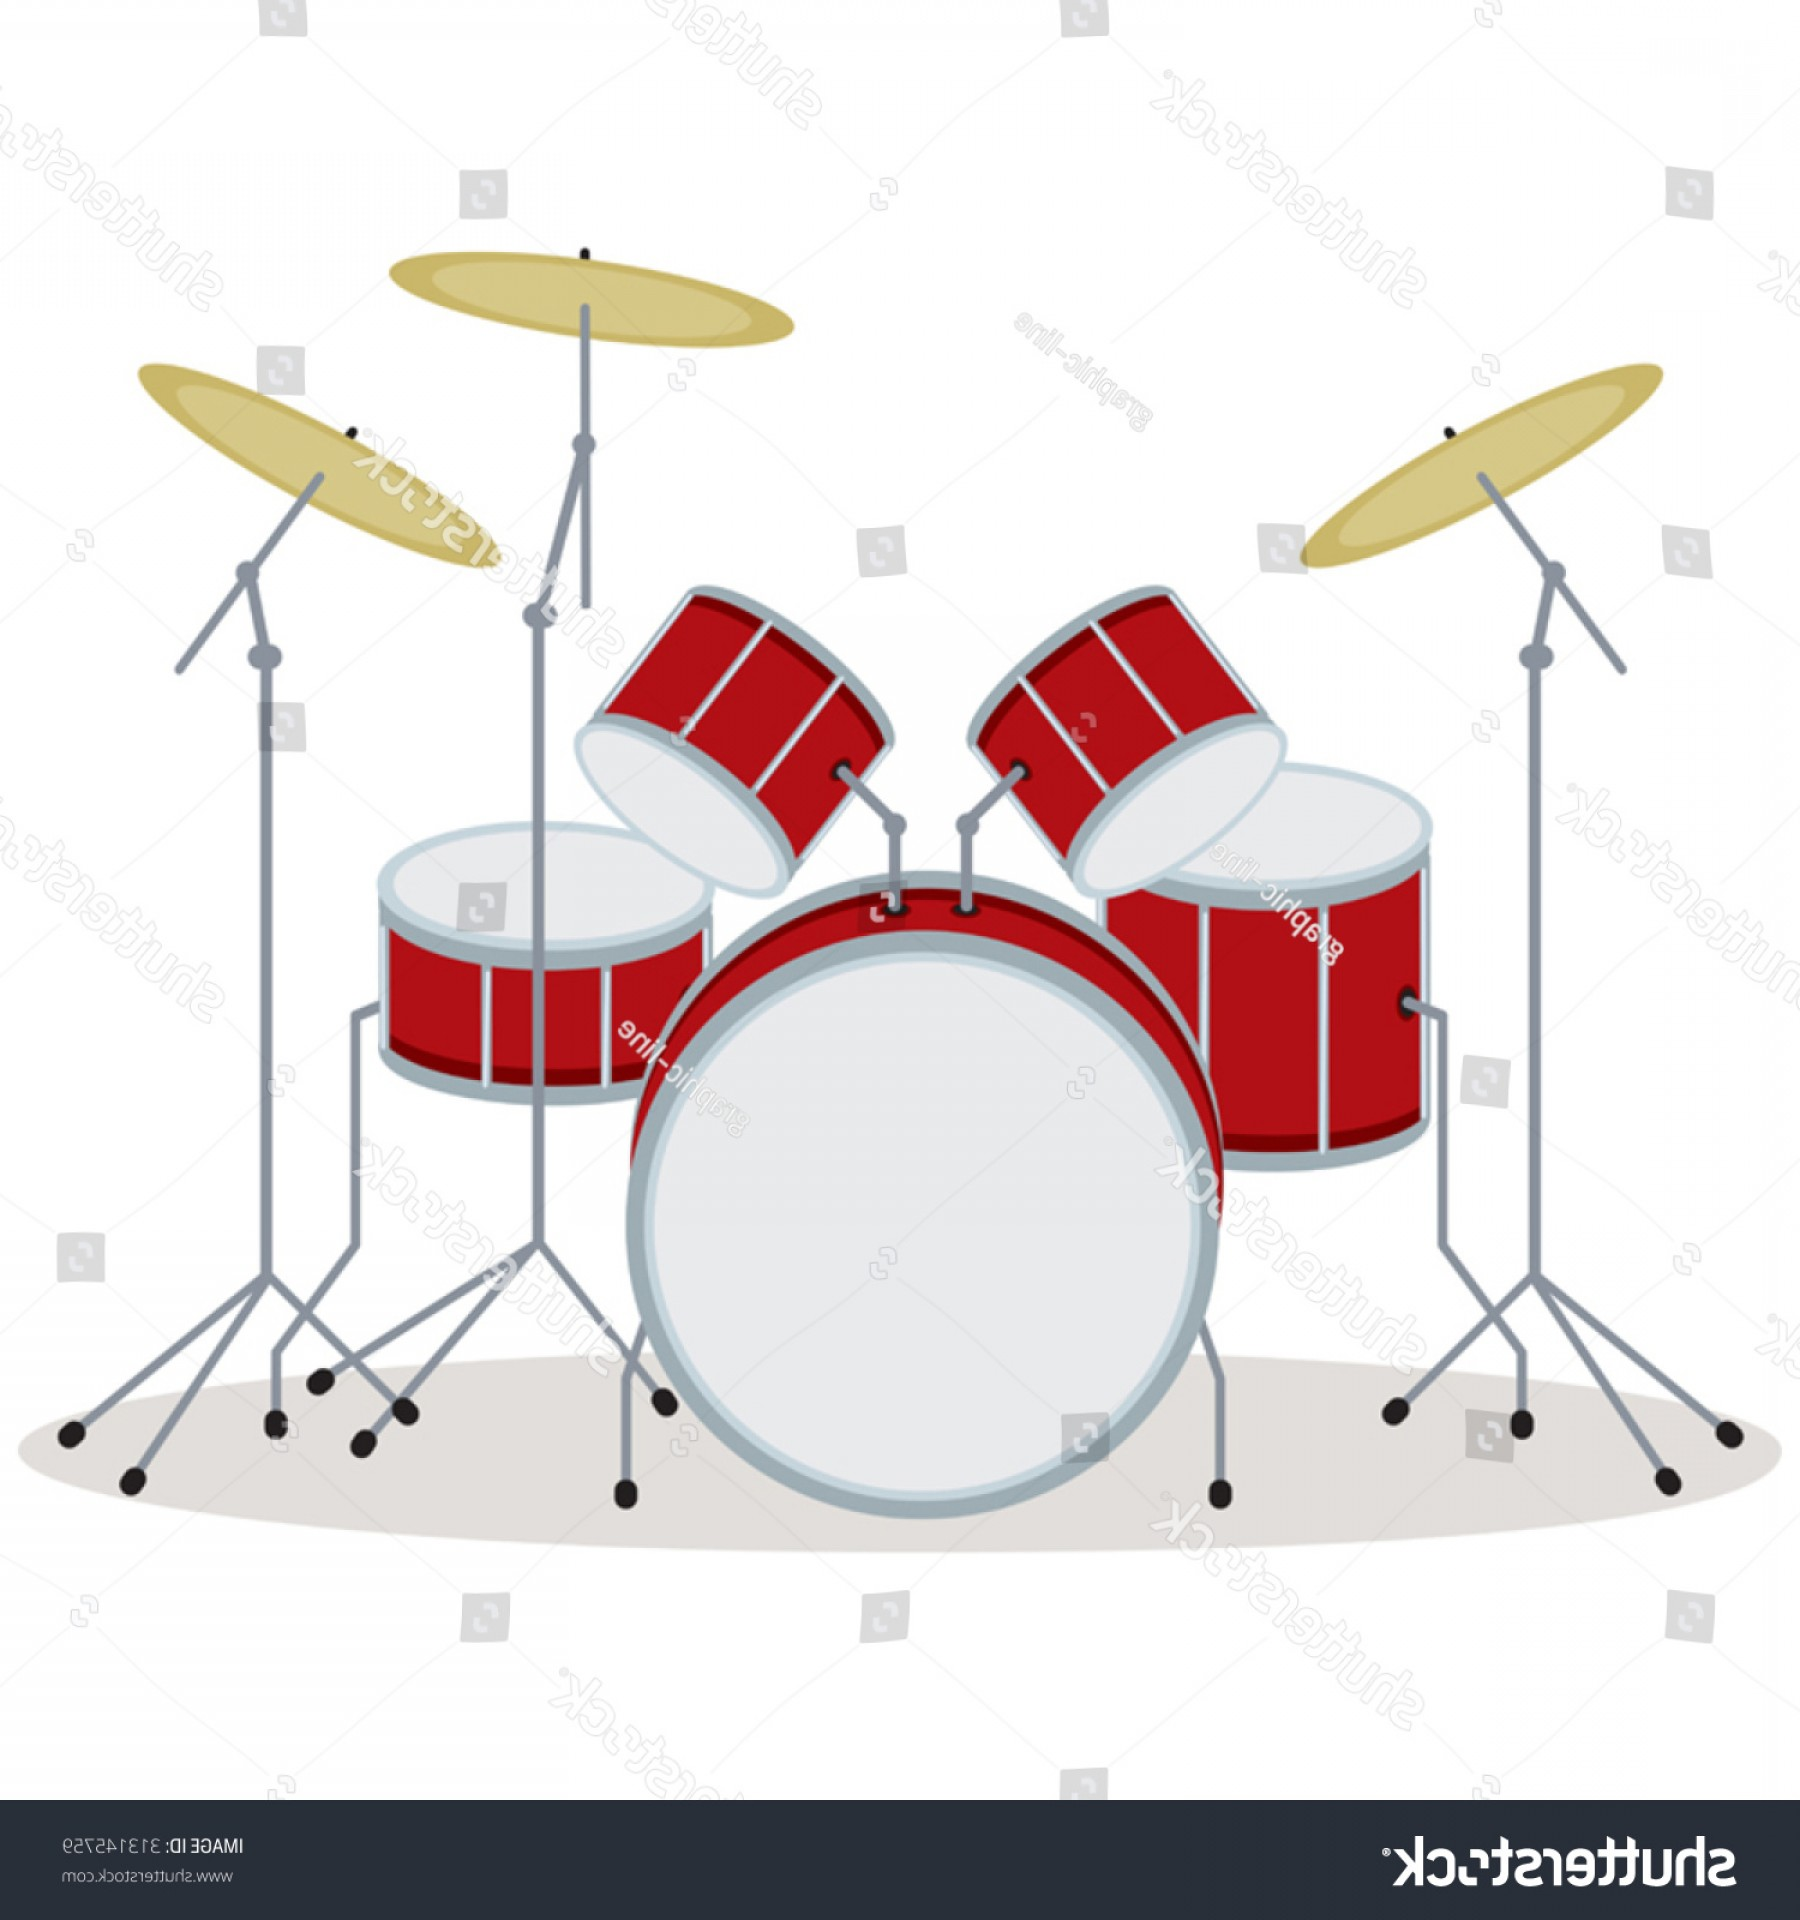 Drum Vector Art: Drum Set Vector Illustration Kit